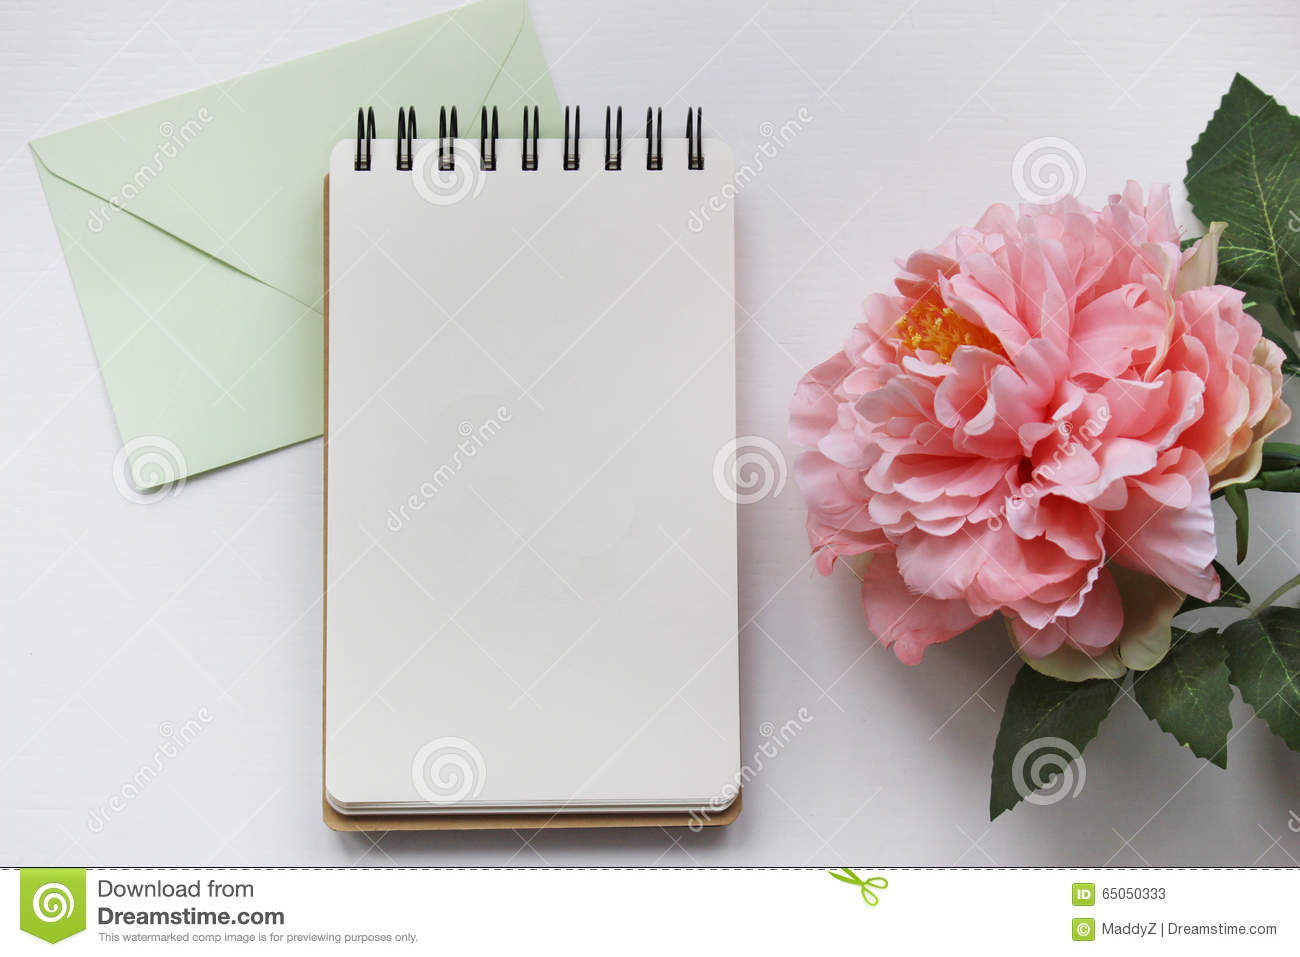 Mockup photography with pink peony, notebook and envelope